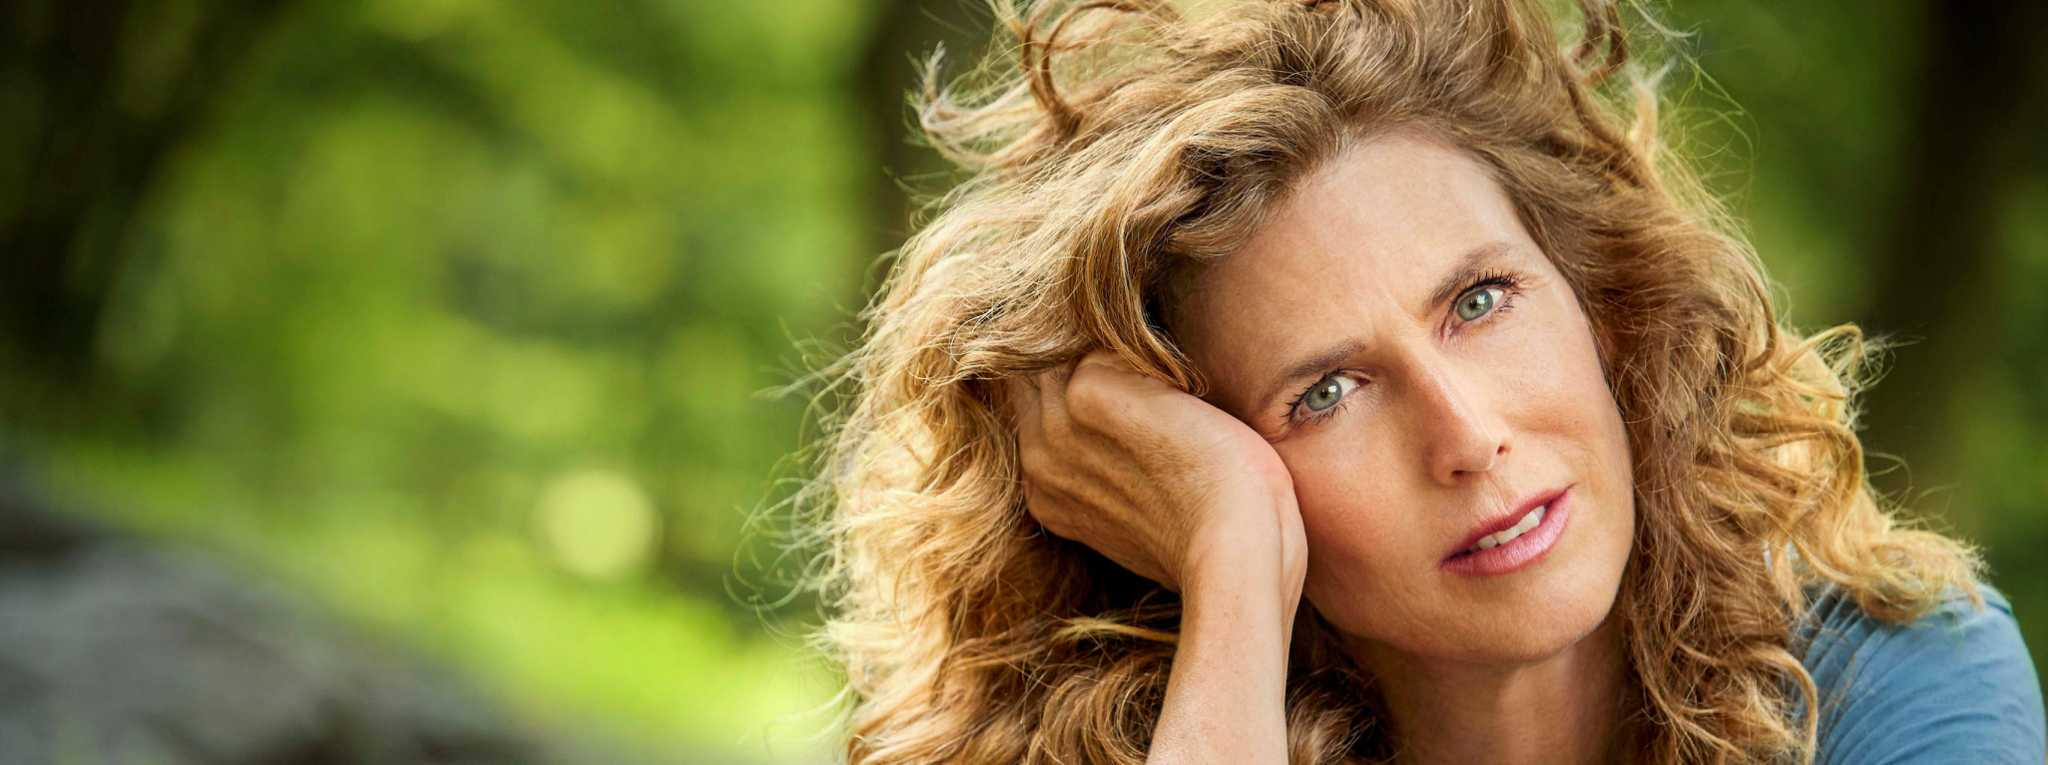 Concert Connection: See Sophie B. Hawkins at Ridgefield Playhouse